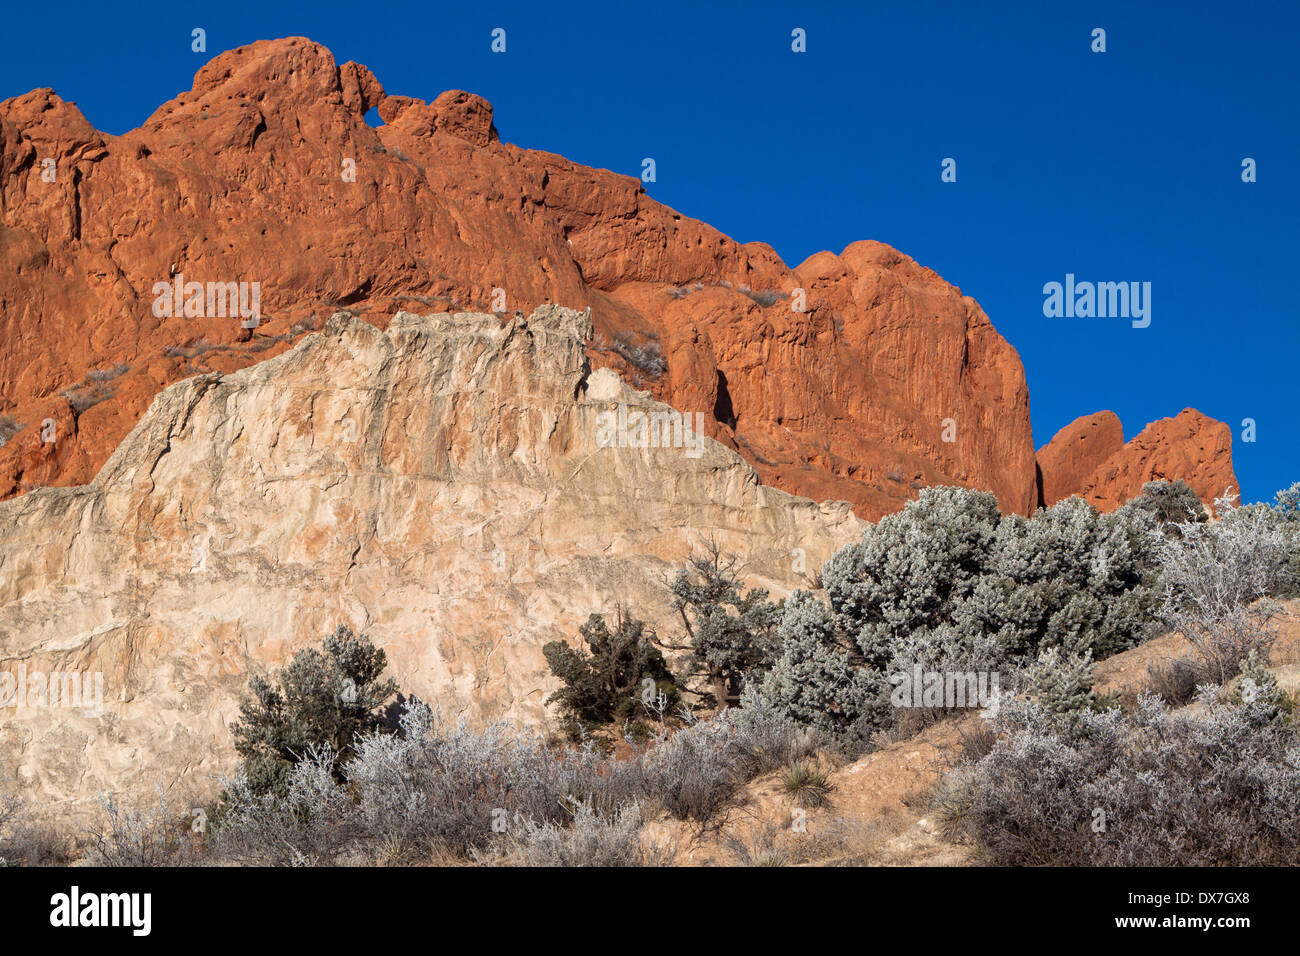 Kissing Camels And White Rock Against A Clear Blue Sky In